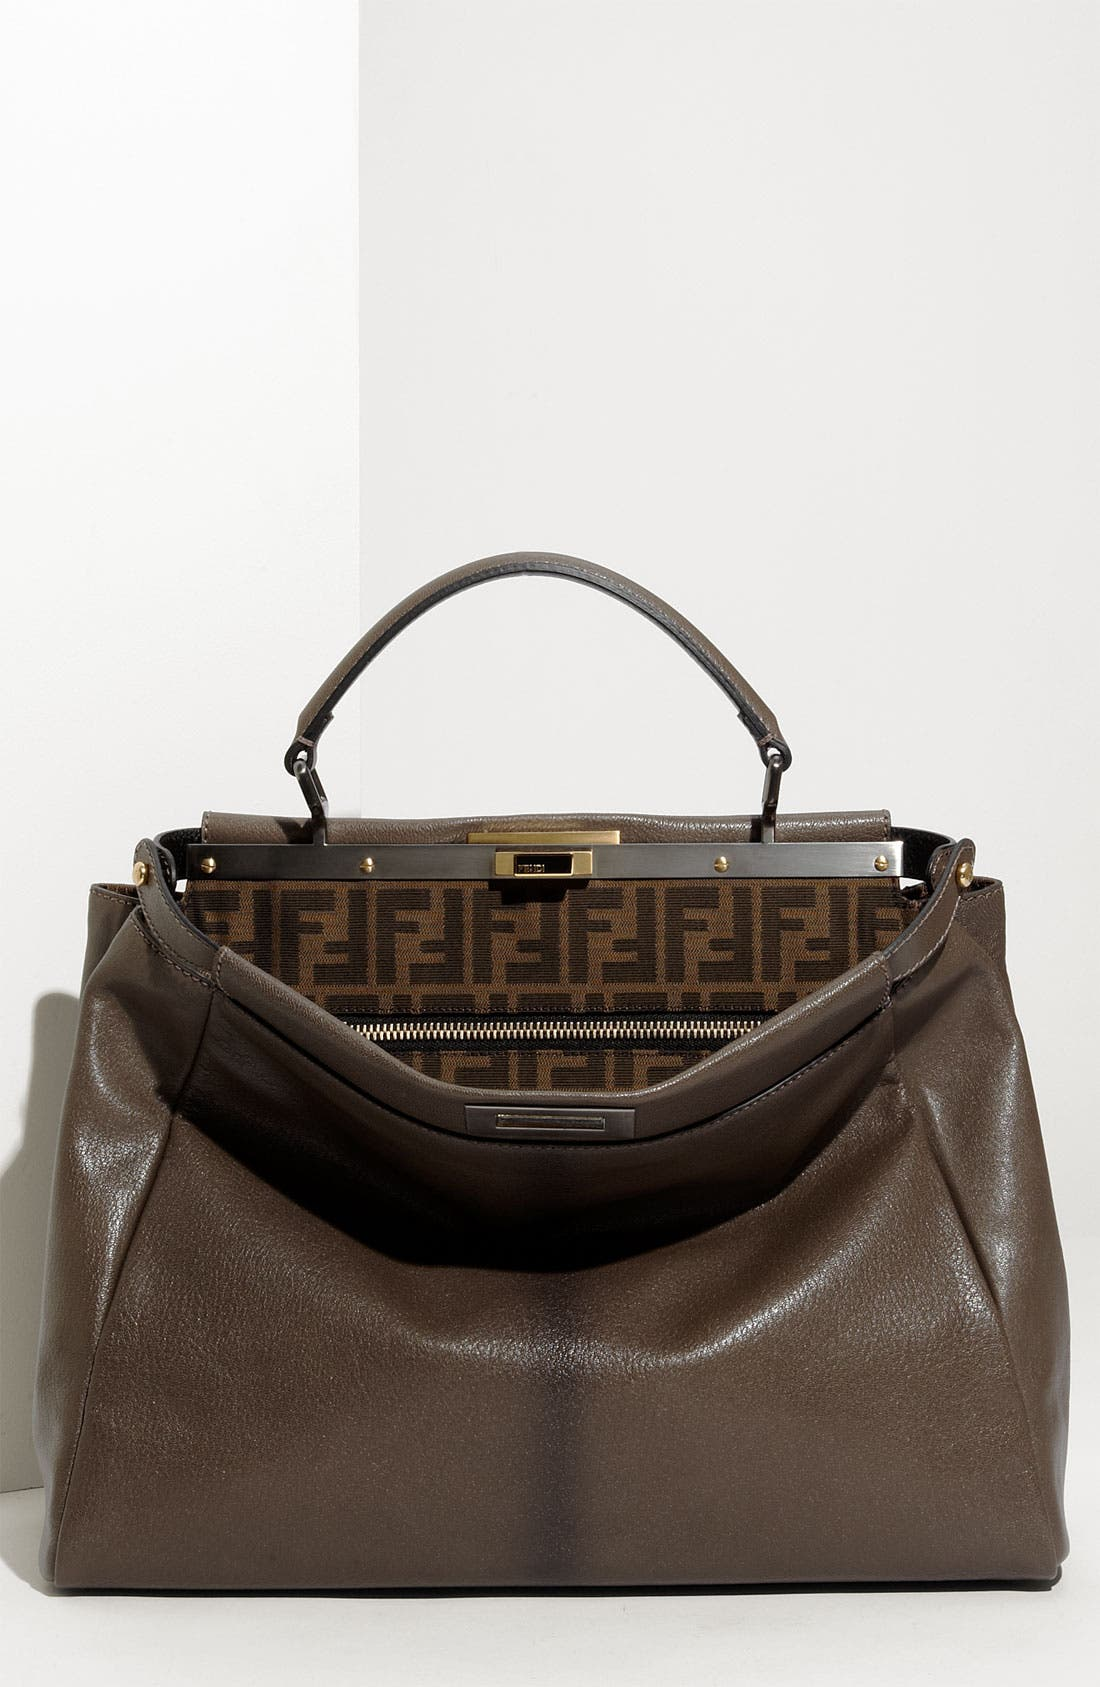 Alternate Image 1 Selected - Fendi 'Peekaboo - Large' Leather Satchel